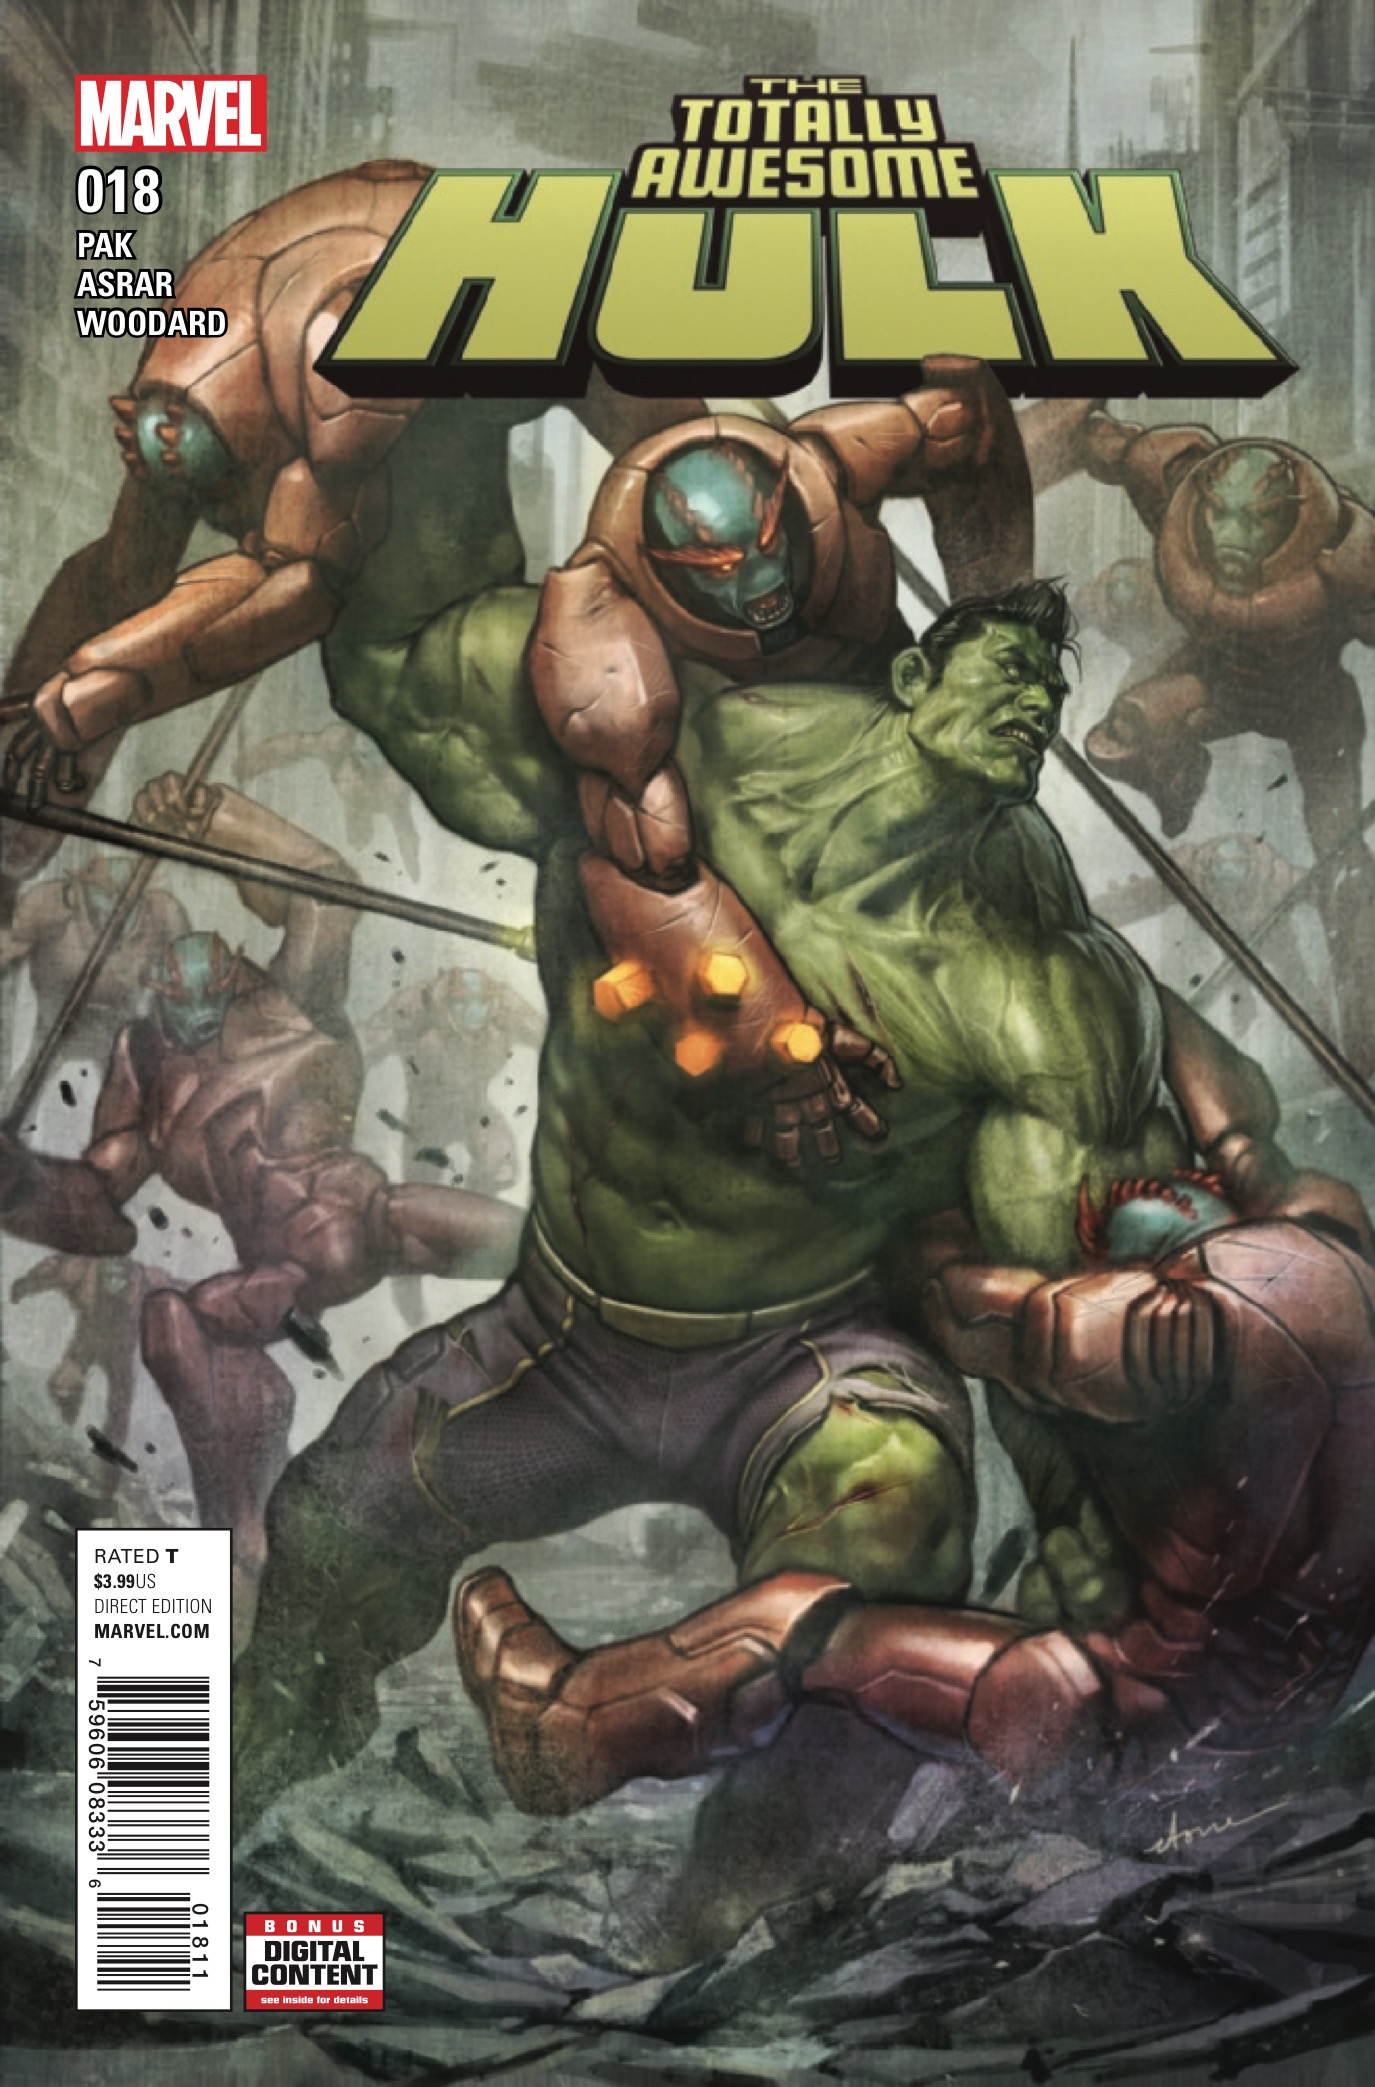 Marvel Preview: Totally Awesome Hulk #18